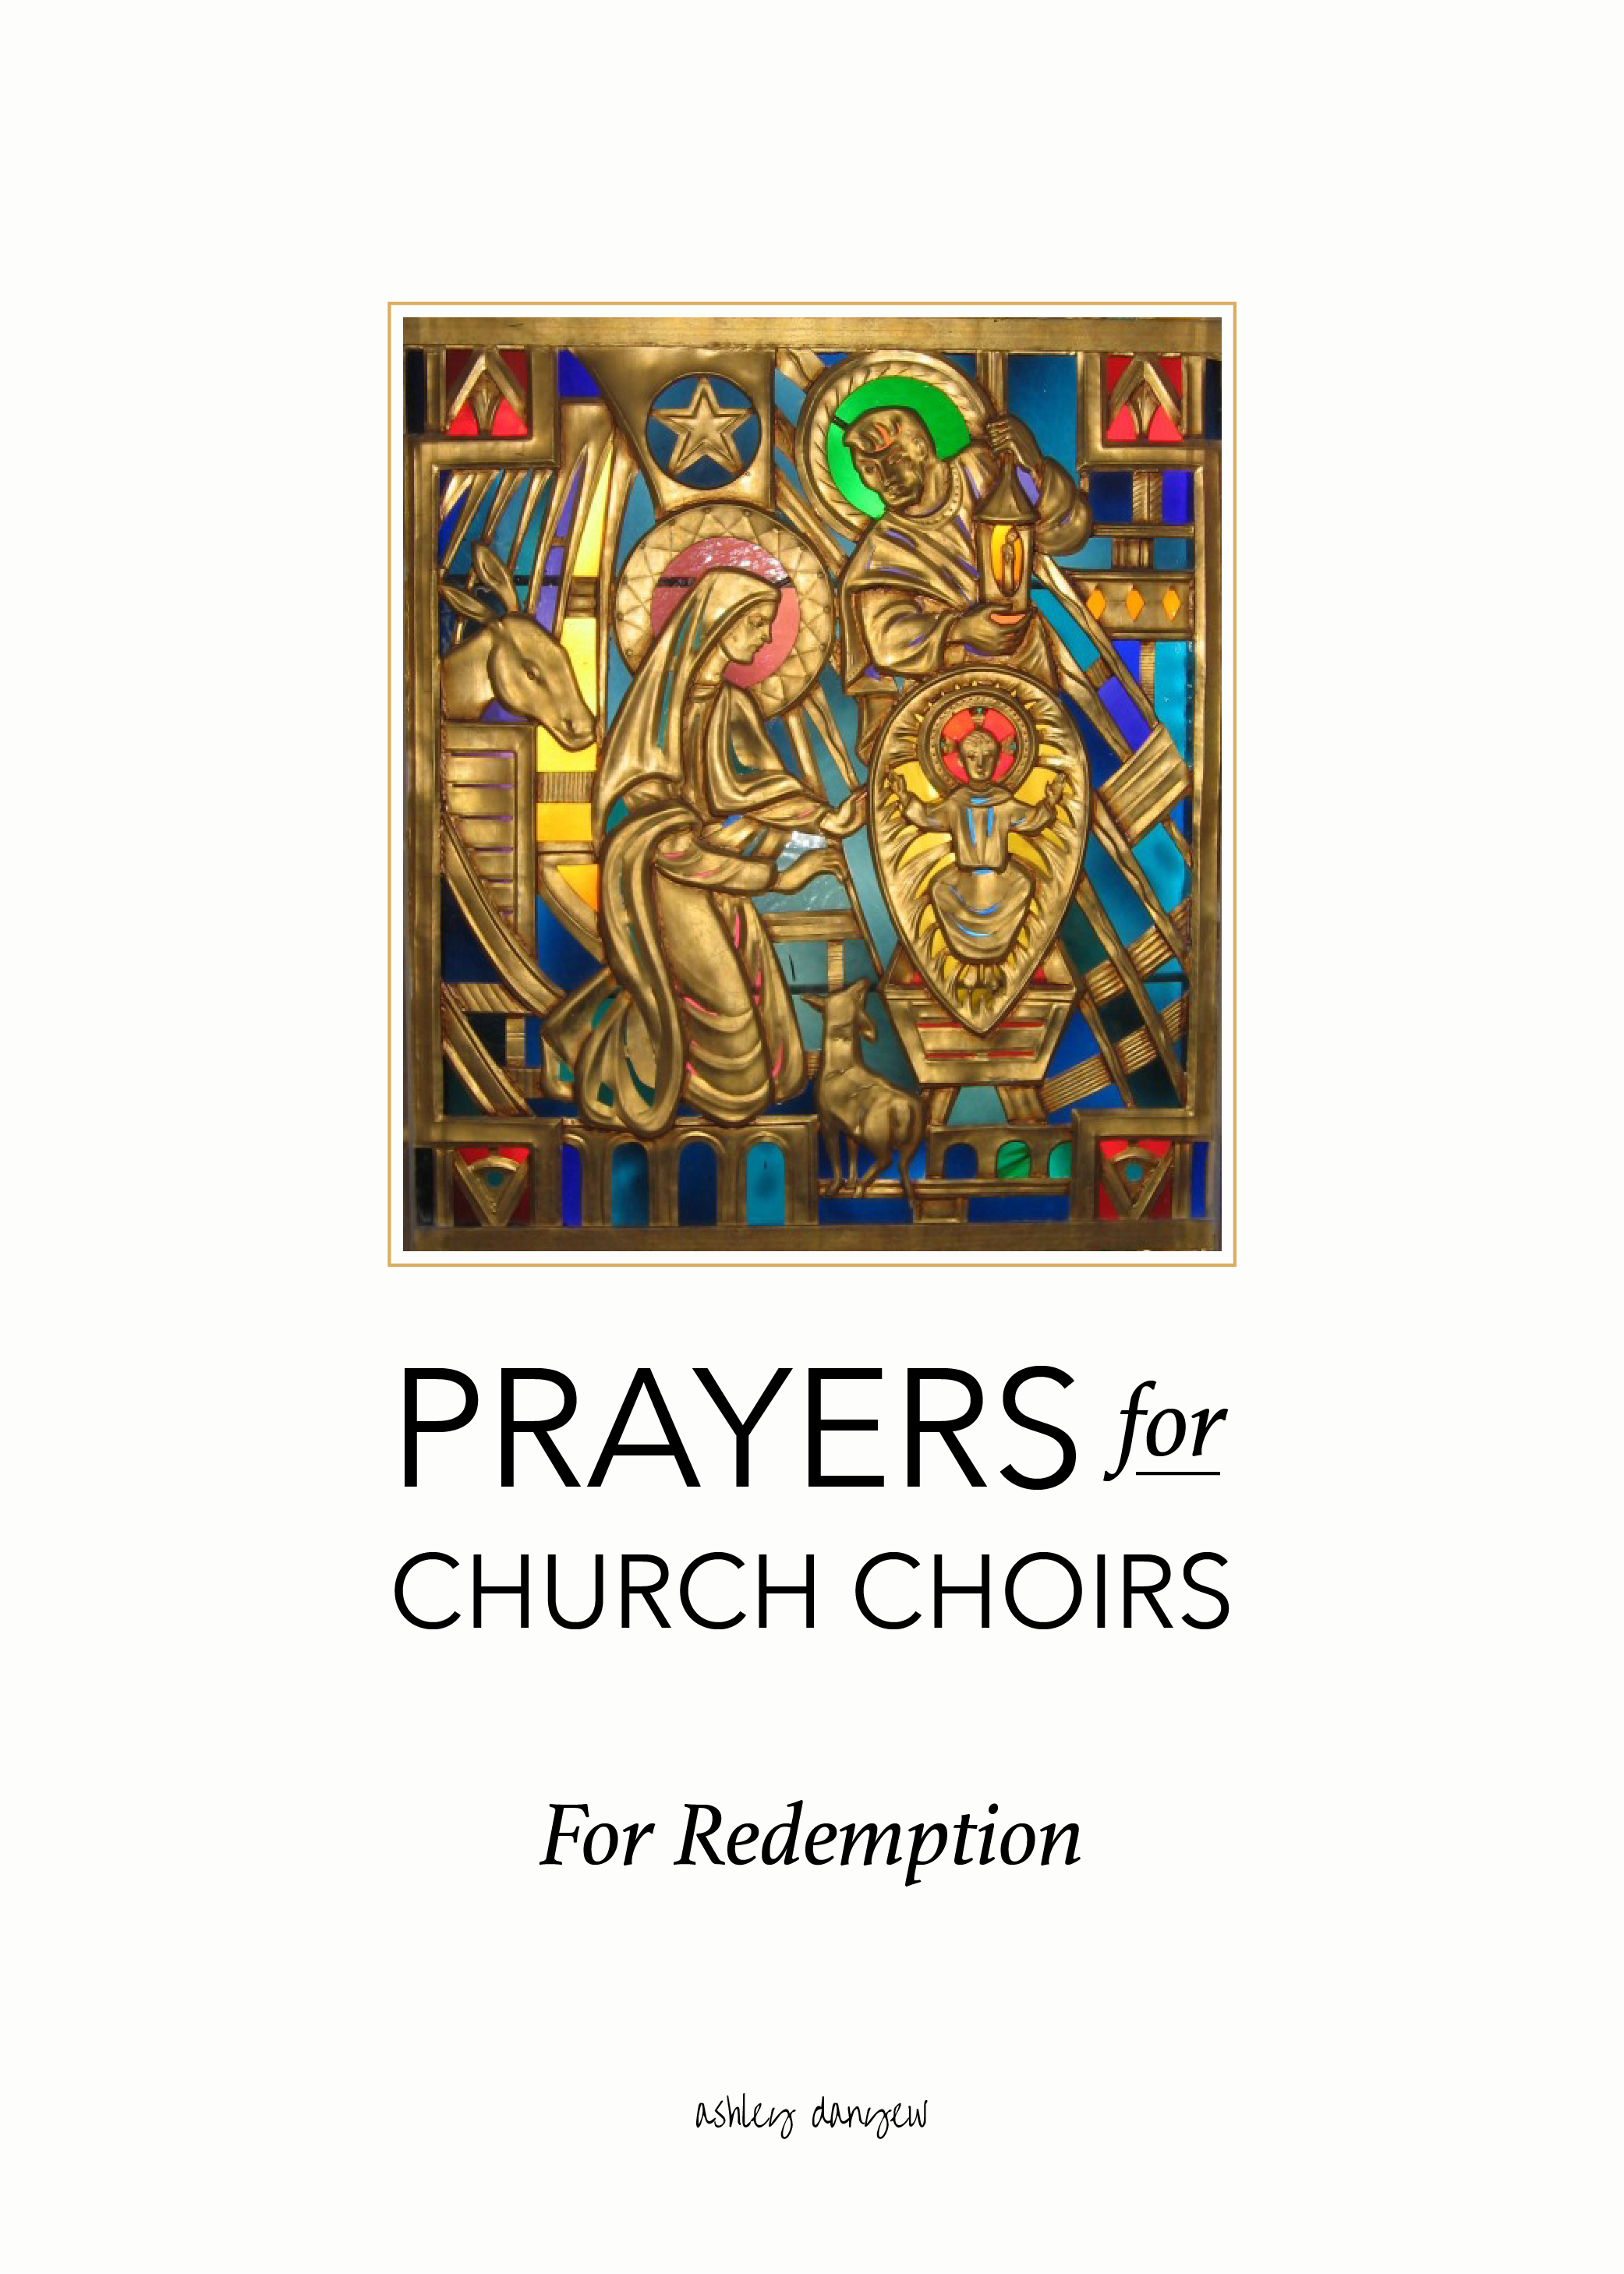 Copy of Prayers for Church Choirs: For Redemption